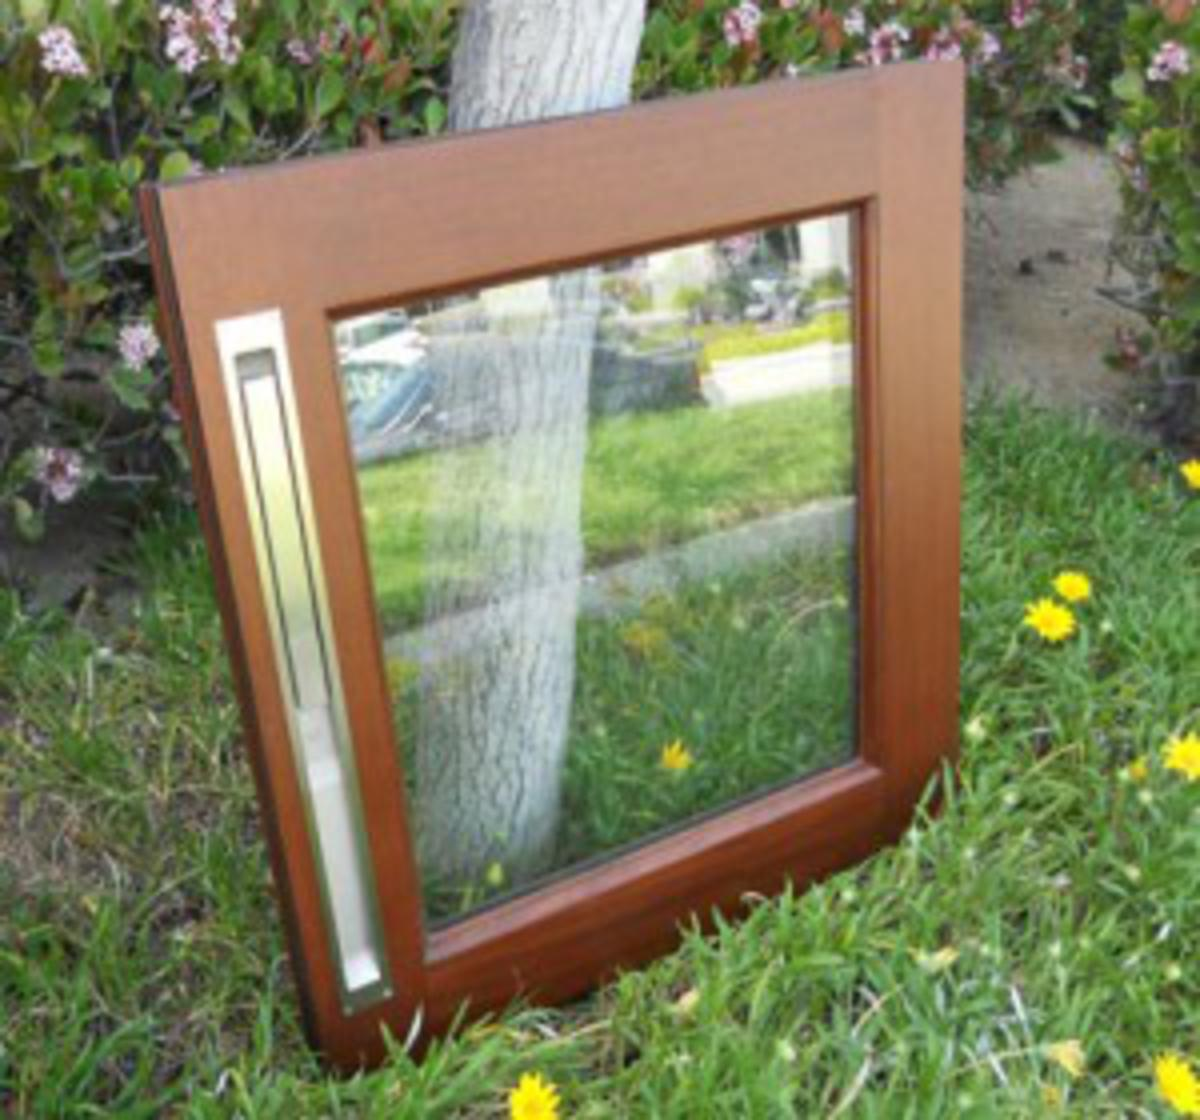 Pocketing Lift and Slide Patio Doors Disappear!